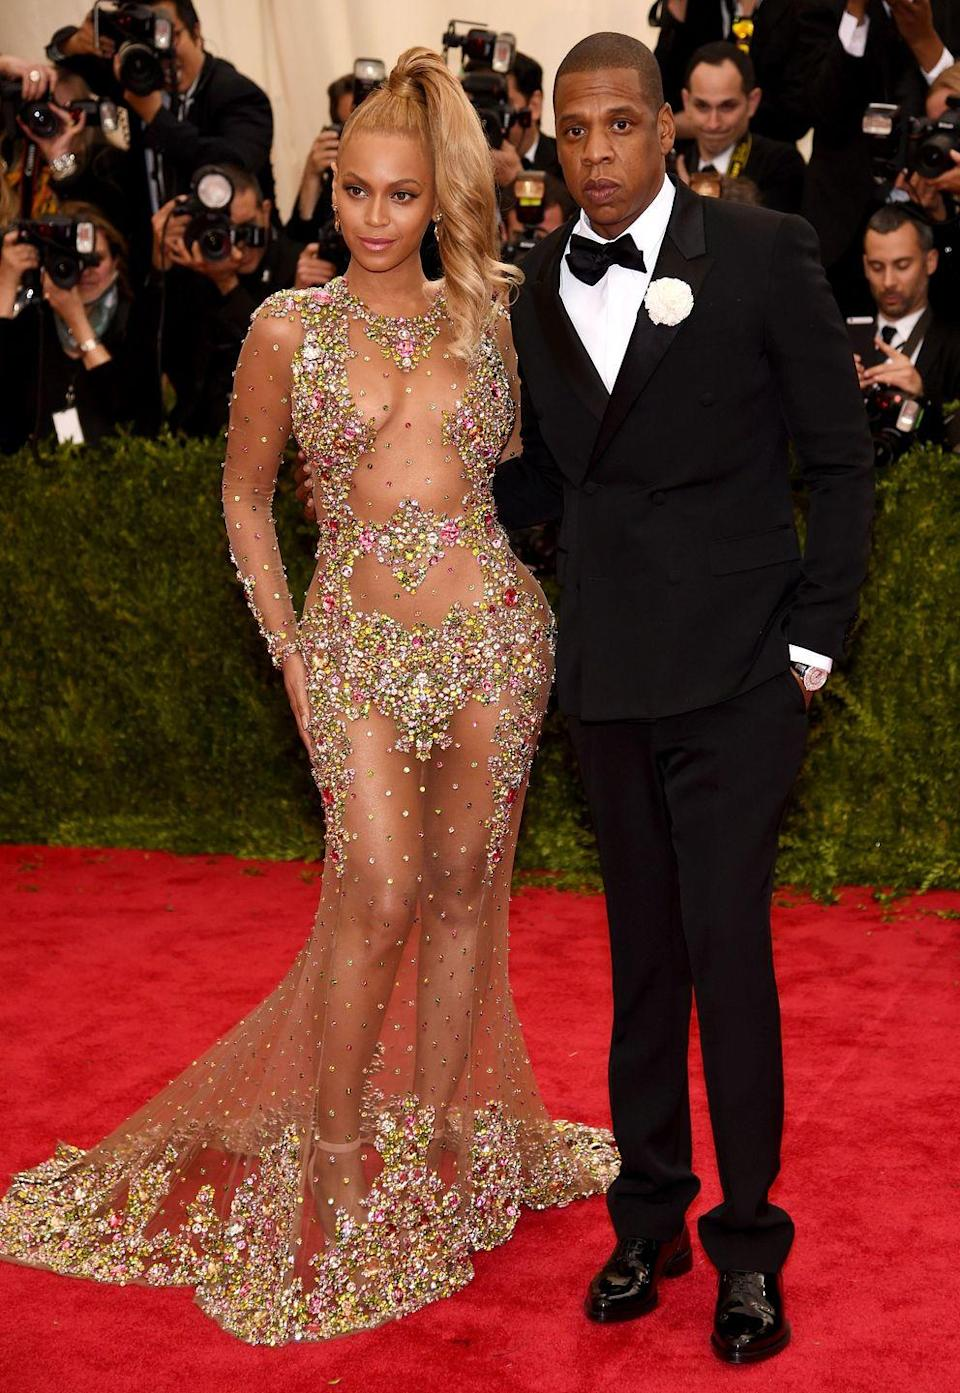 """<p>I mean, I'll tell you what happened, but you could just listen to <em>Lemonade</em>. Beyoncé and Jay-Z reconciled after Bey discovered Jay had been cheating on her, according to <a href=""""https://www.washingtonpost.com/news/arts-and-entertainment/wp/2018/04/06/jay-z-opens-up-to-david-letterman-about-cheating-on-beyonce-and-his-mothers-sexuality/?noredirect=on&utm_term=.77ea62ee1e55"""" rel=""""nofollow noopener"""" target=""""_blank"""" data-ylk=""""slk:The"""" class=""""link rapid-noclick-resp""""><em>The</em> </a><em><a href=""""https://www.washingtonpost.com/news/arts-and-entertainment/wp/2018/04/06/jay-z-opens-up-to-david-letterman-about-cheating-on-beyonce-and-his-mothers-sexuality/?noredirect=on&utm_term=.77ea62ee1e55"""" rel=""""nofollow noopener"""" target=""""_blank"""" data-ylk=""""slk:Washington Post"""" class=""""link rapid-noclick-resp"""">Washington Post</a></em>. She dropped an album about it, and then he dropped one as an apology, and then they dropped one together singing about how they're """"happily in love."""" </p><p>Though, since Jay """"f*cked up the first stone,"""" the couple renewed their vows.</p>"""